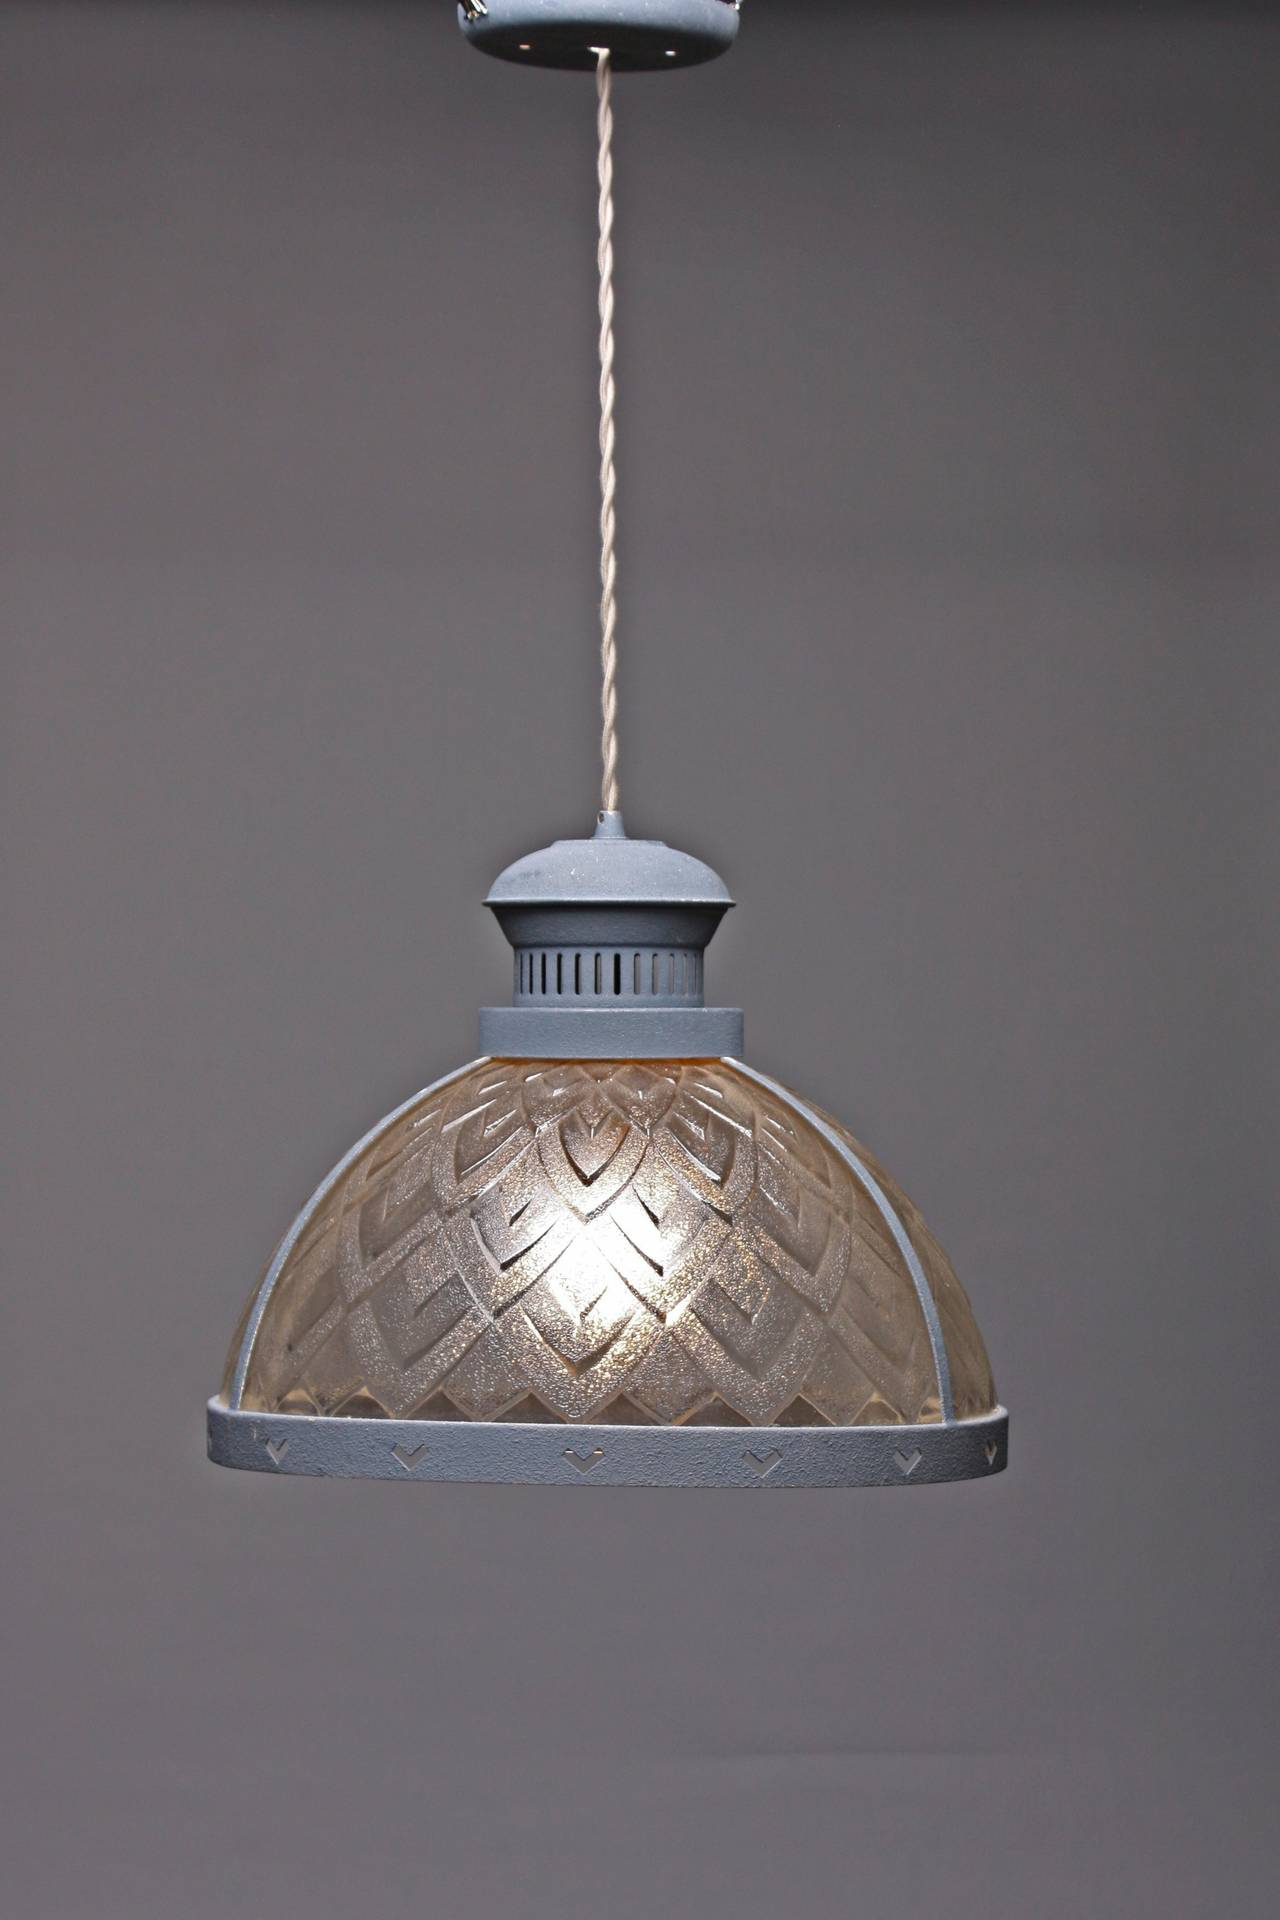 1950s Pressed Glass Kitchen Light For Sale at 1stdibs